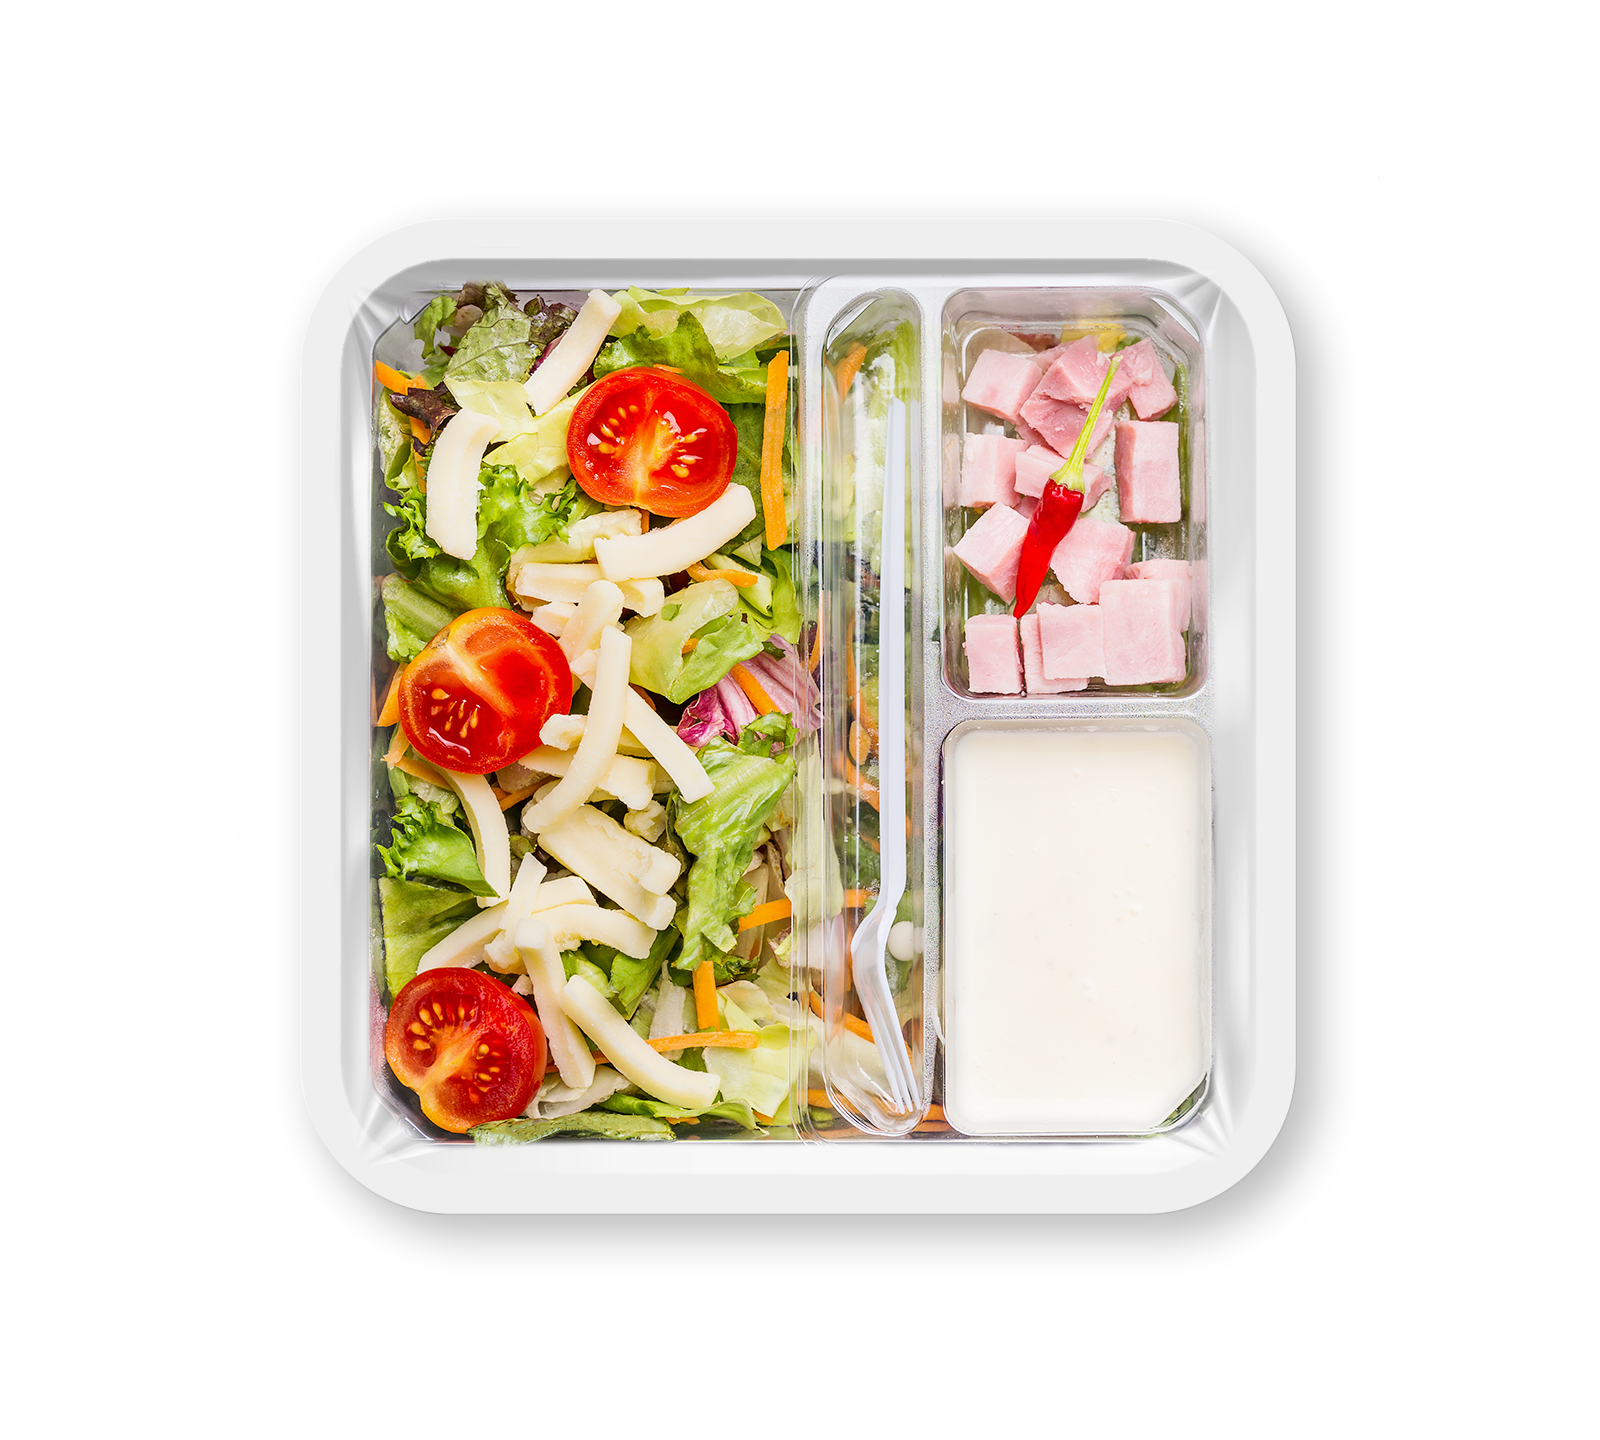 MAPtech's created custom salad packaging container that utilizes plastic film overlay and MAP technology